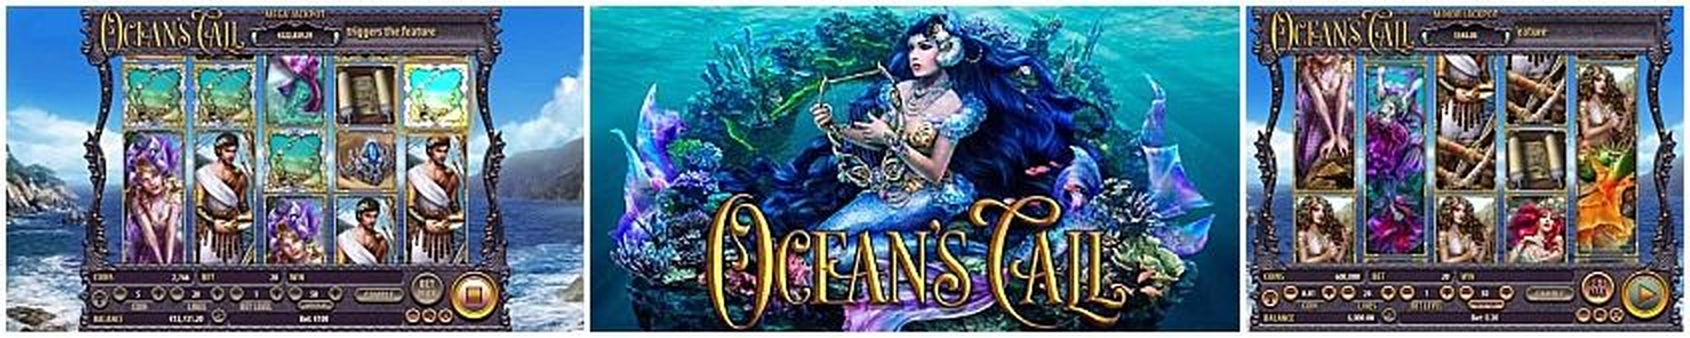 The Ocean's Call Online Slot Demo Game by Habanero